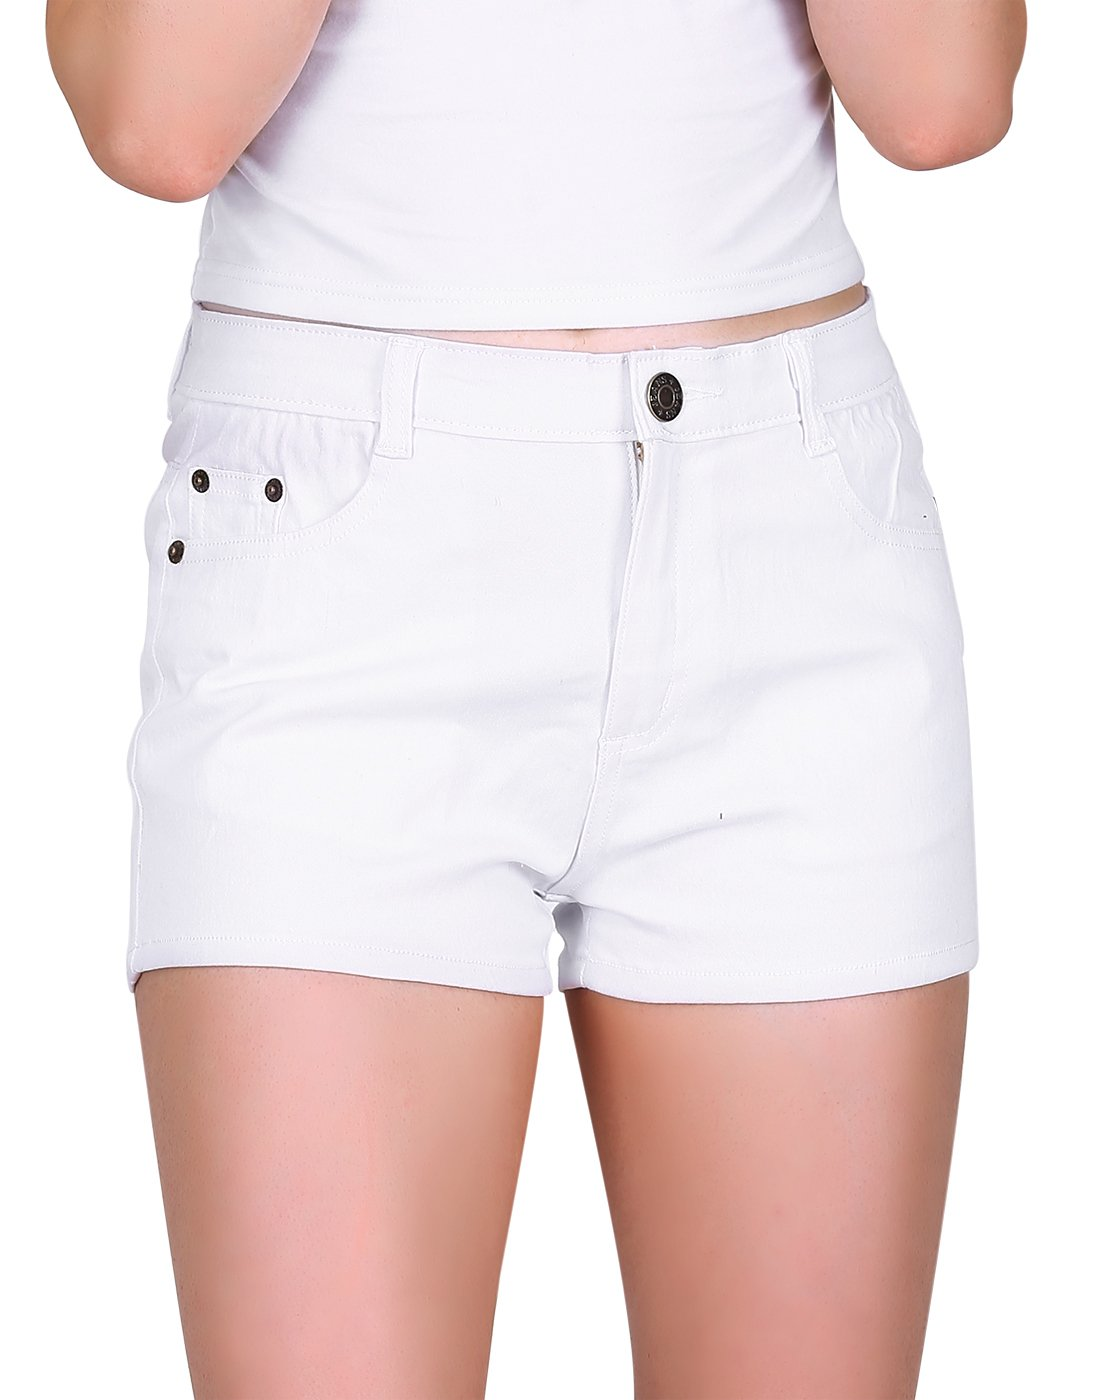 HDE Women's Solid Color Ultra Stretch Fitted Low Rise Moleton Denim Booty Shorts (White, Large)